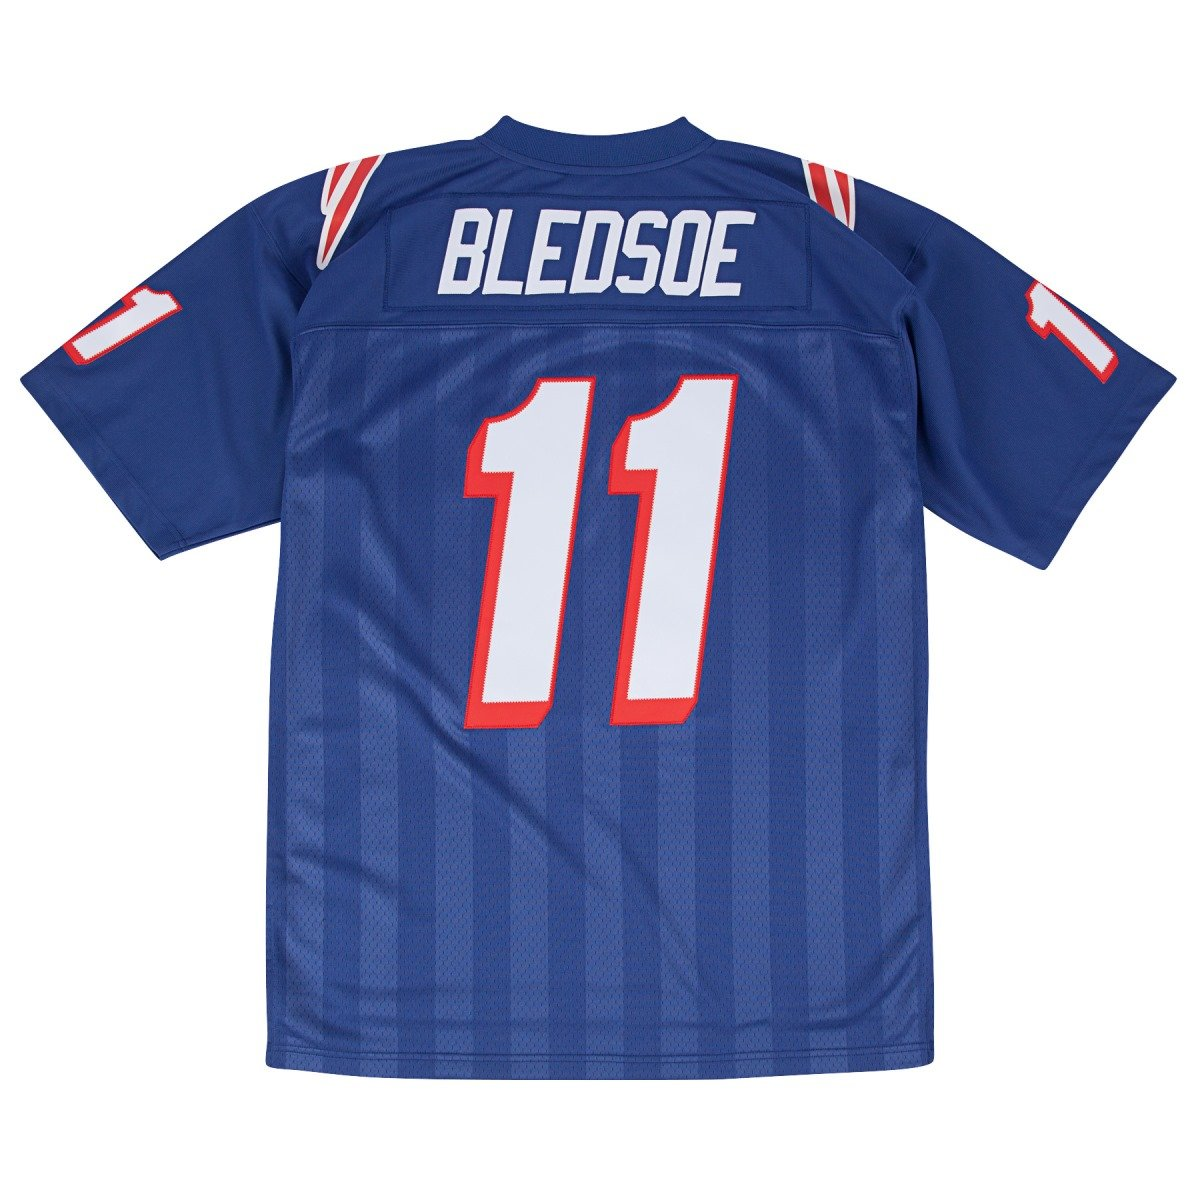 more photos ccd6b 95b75 Mitchell & Ness Drew Bledsoe New England Patriots Men's NFL Premier Blue  Jersey